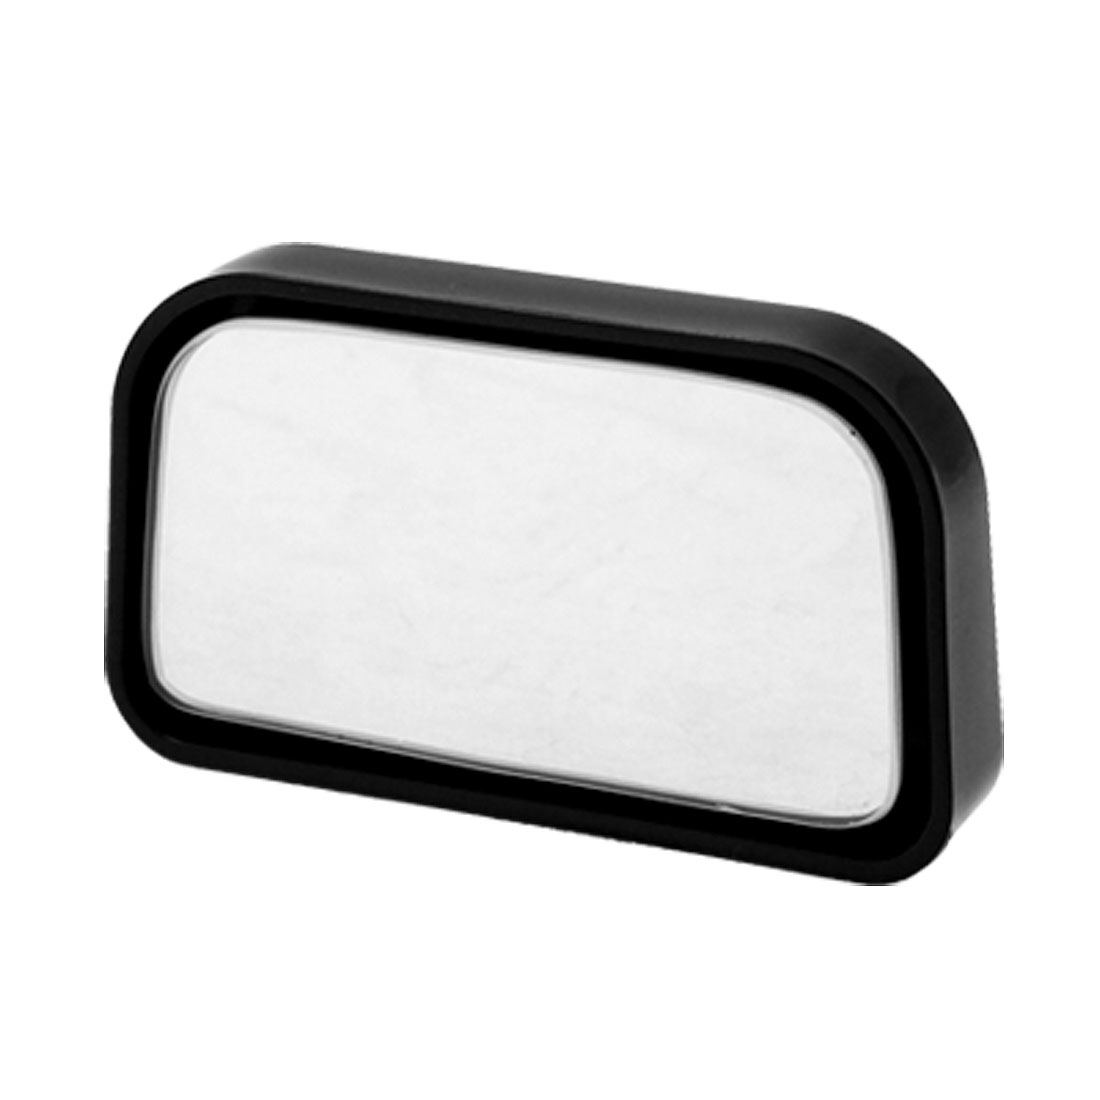 "Rectangle Black Car Wide Angle Convex Blind Spot Rearview Mirror 3"" x 1.8"""